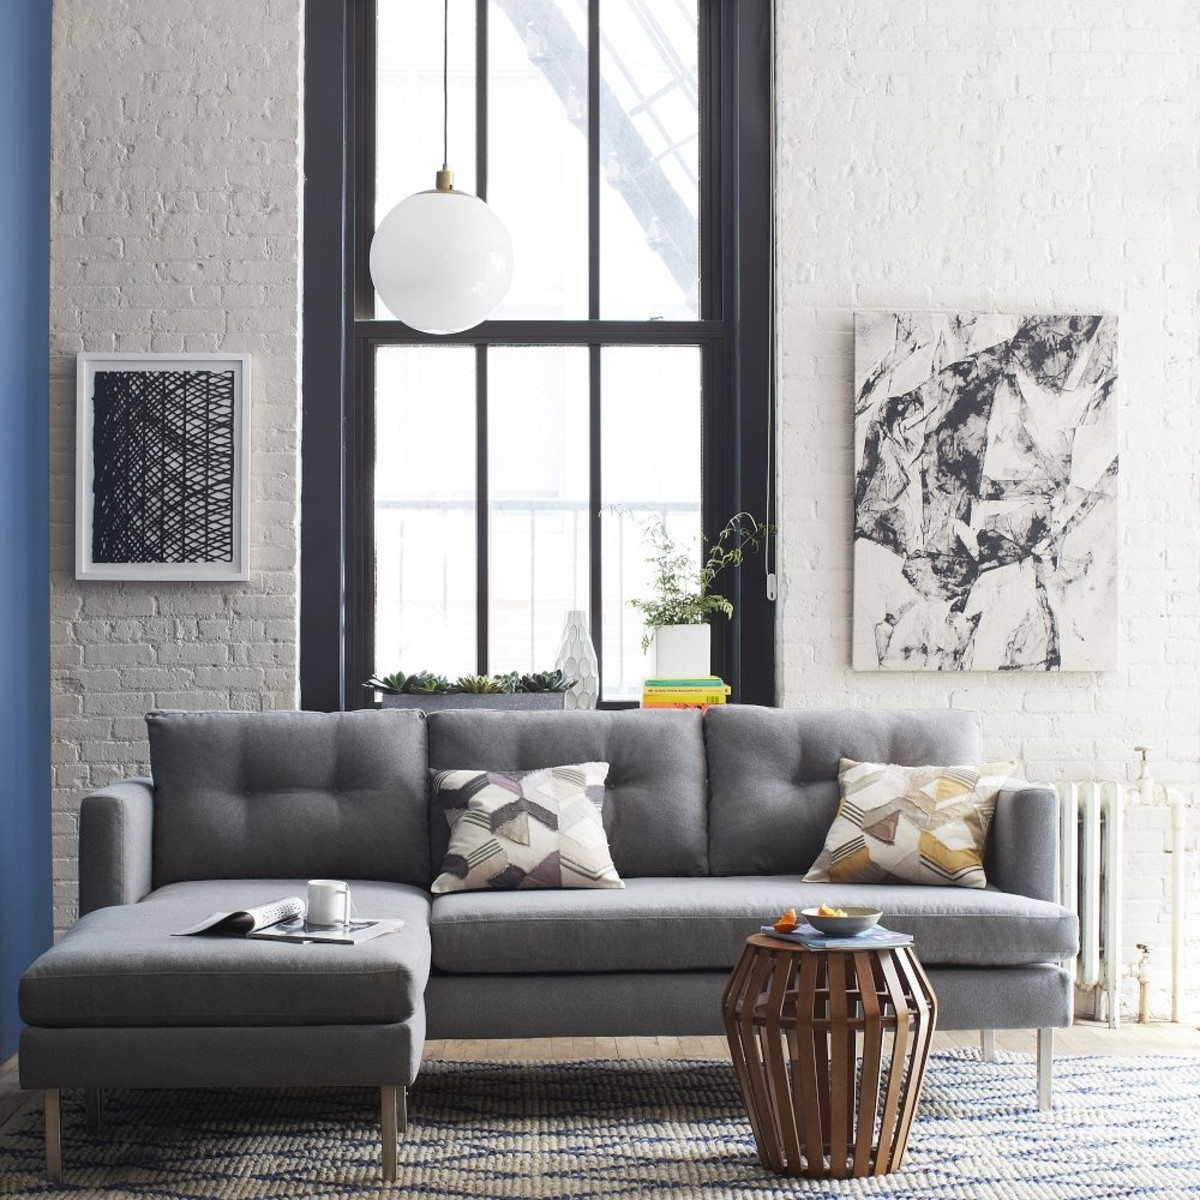 Jackson 2 Piece Chaise Sectional – Heather Grey Aud1809 | West Elm Within West Elm Sectional Sofas (Image 4 of 10)